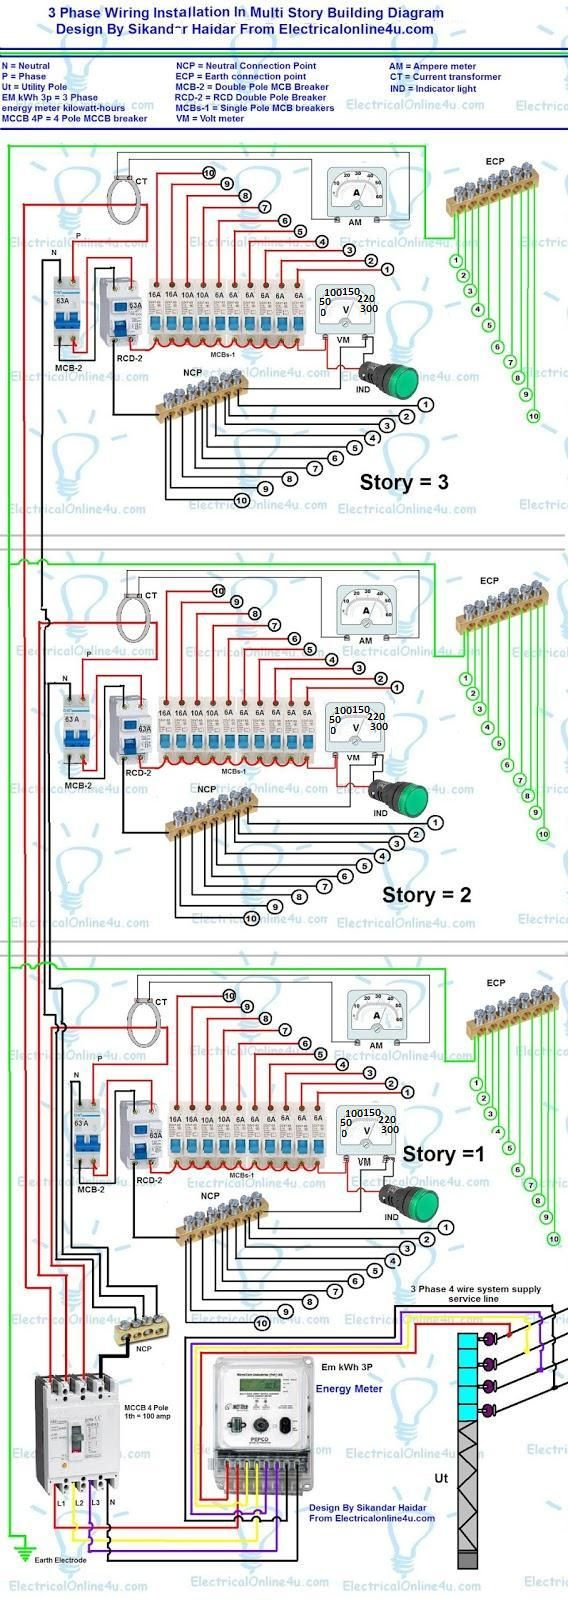 small resolution of 3 phase wiring installation diagram 3 phase wiring installation diagram basic electrical